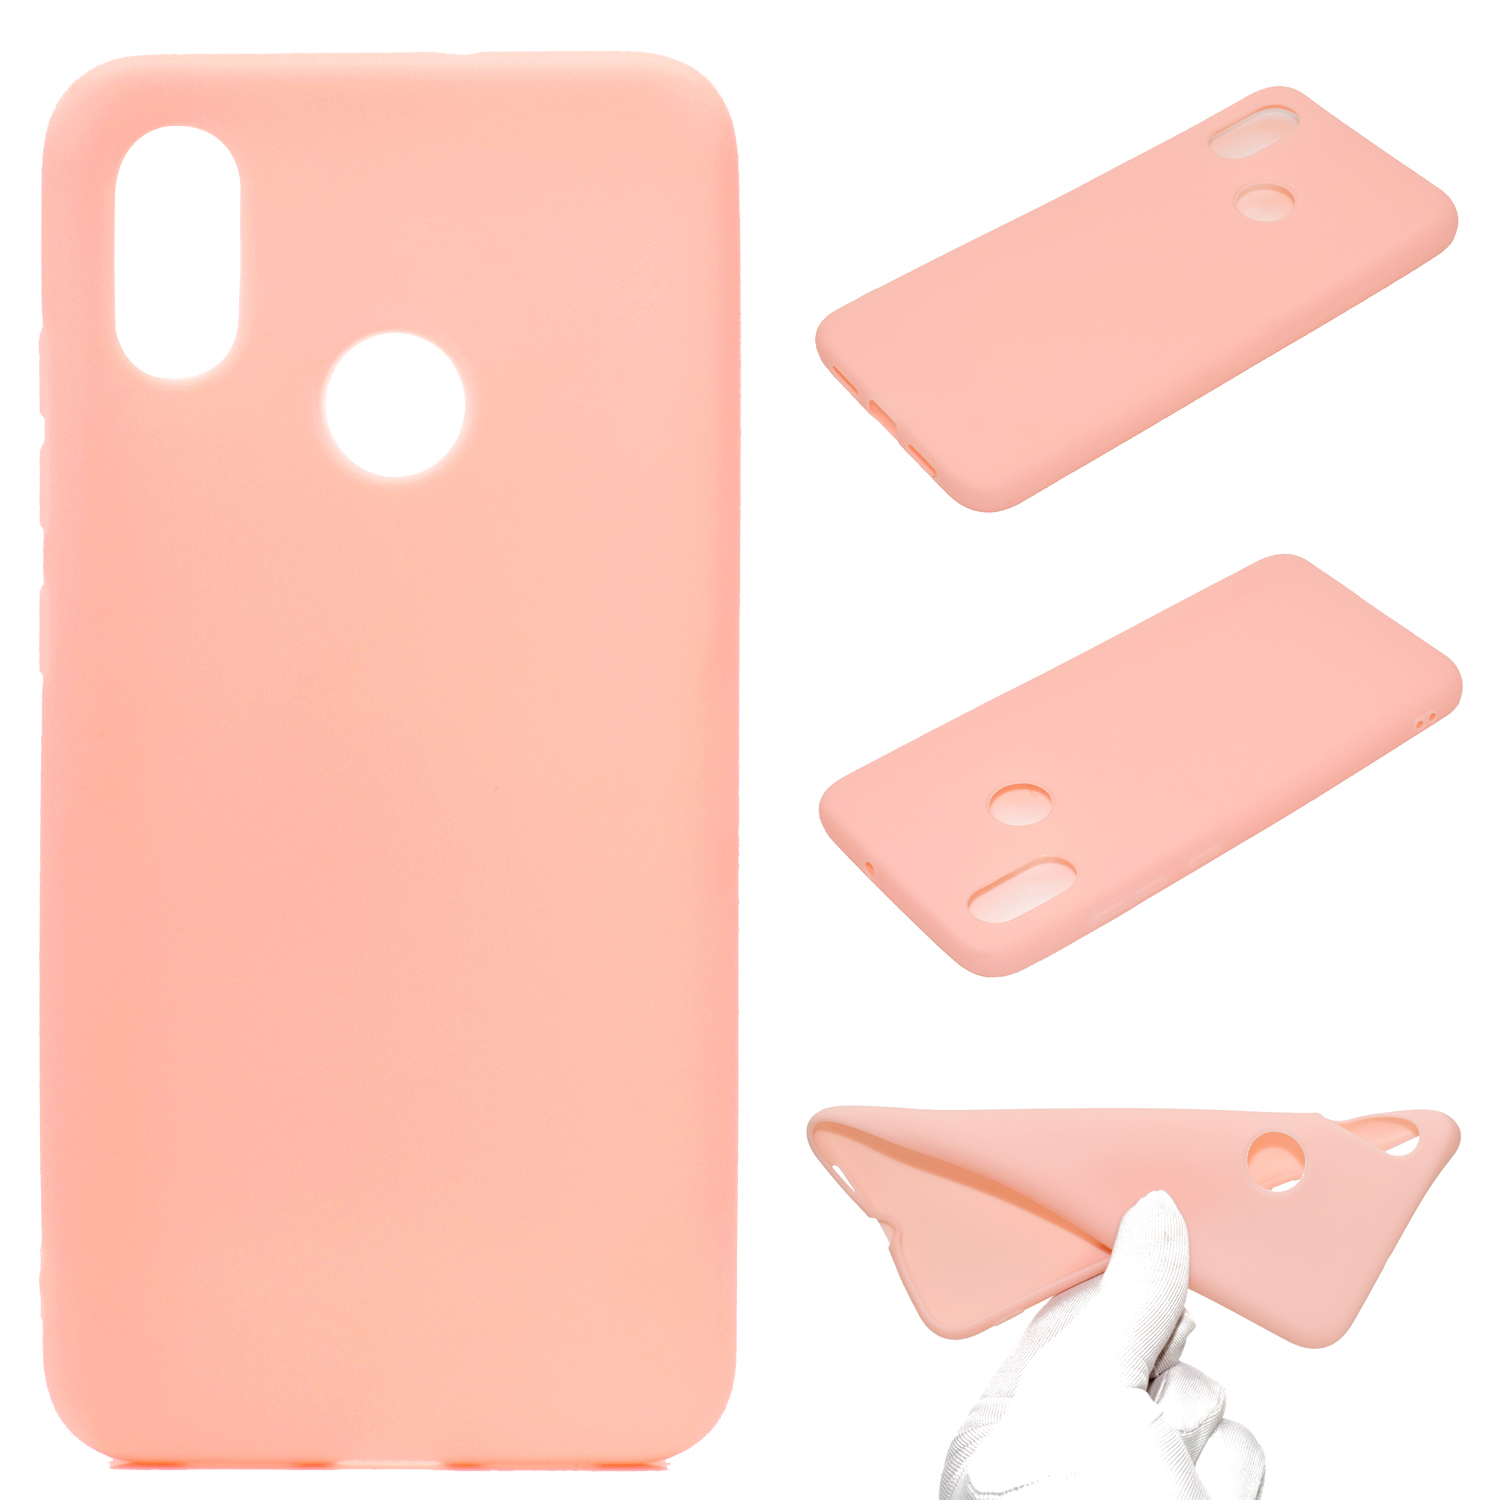 For HUAWEI Y6 2019 Lovely Candy Color Matte TPU Anti-scratch Non-slip Protective Cover Back Case Light pink